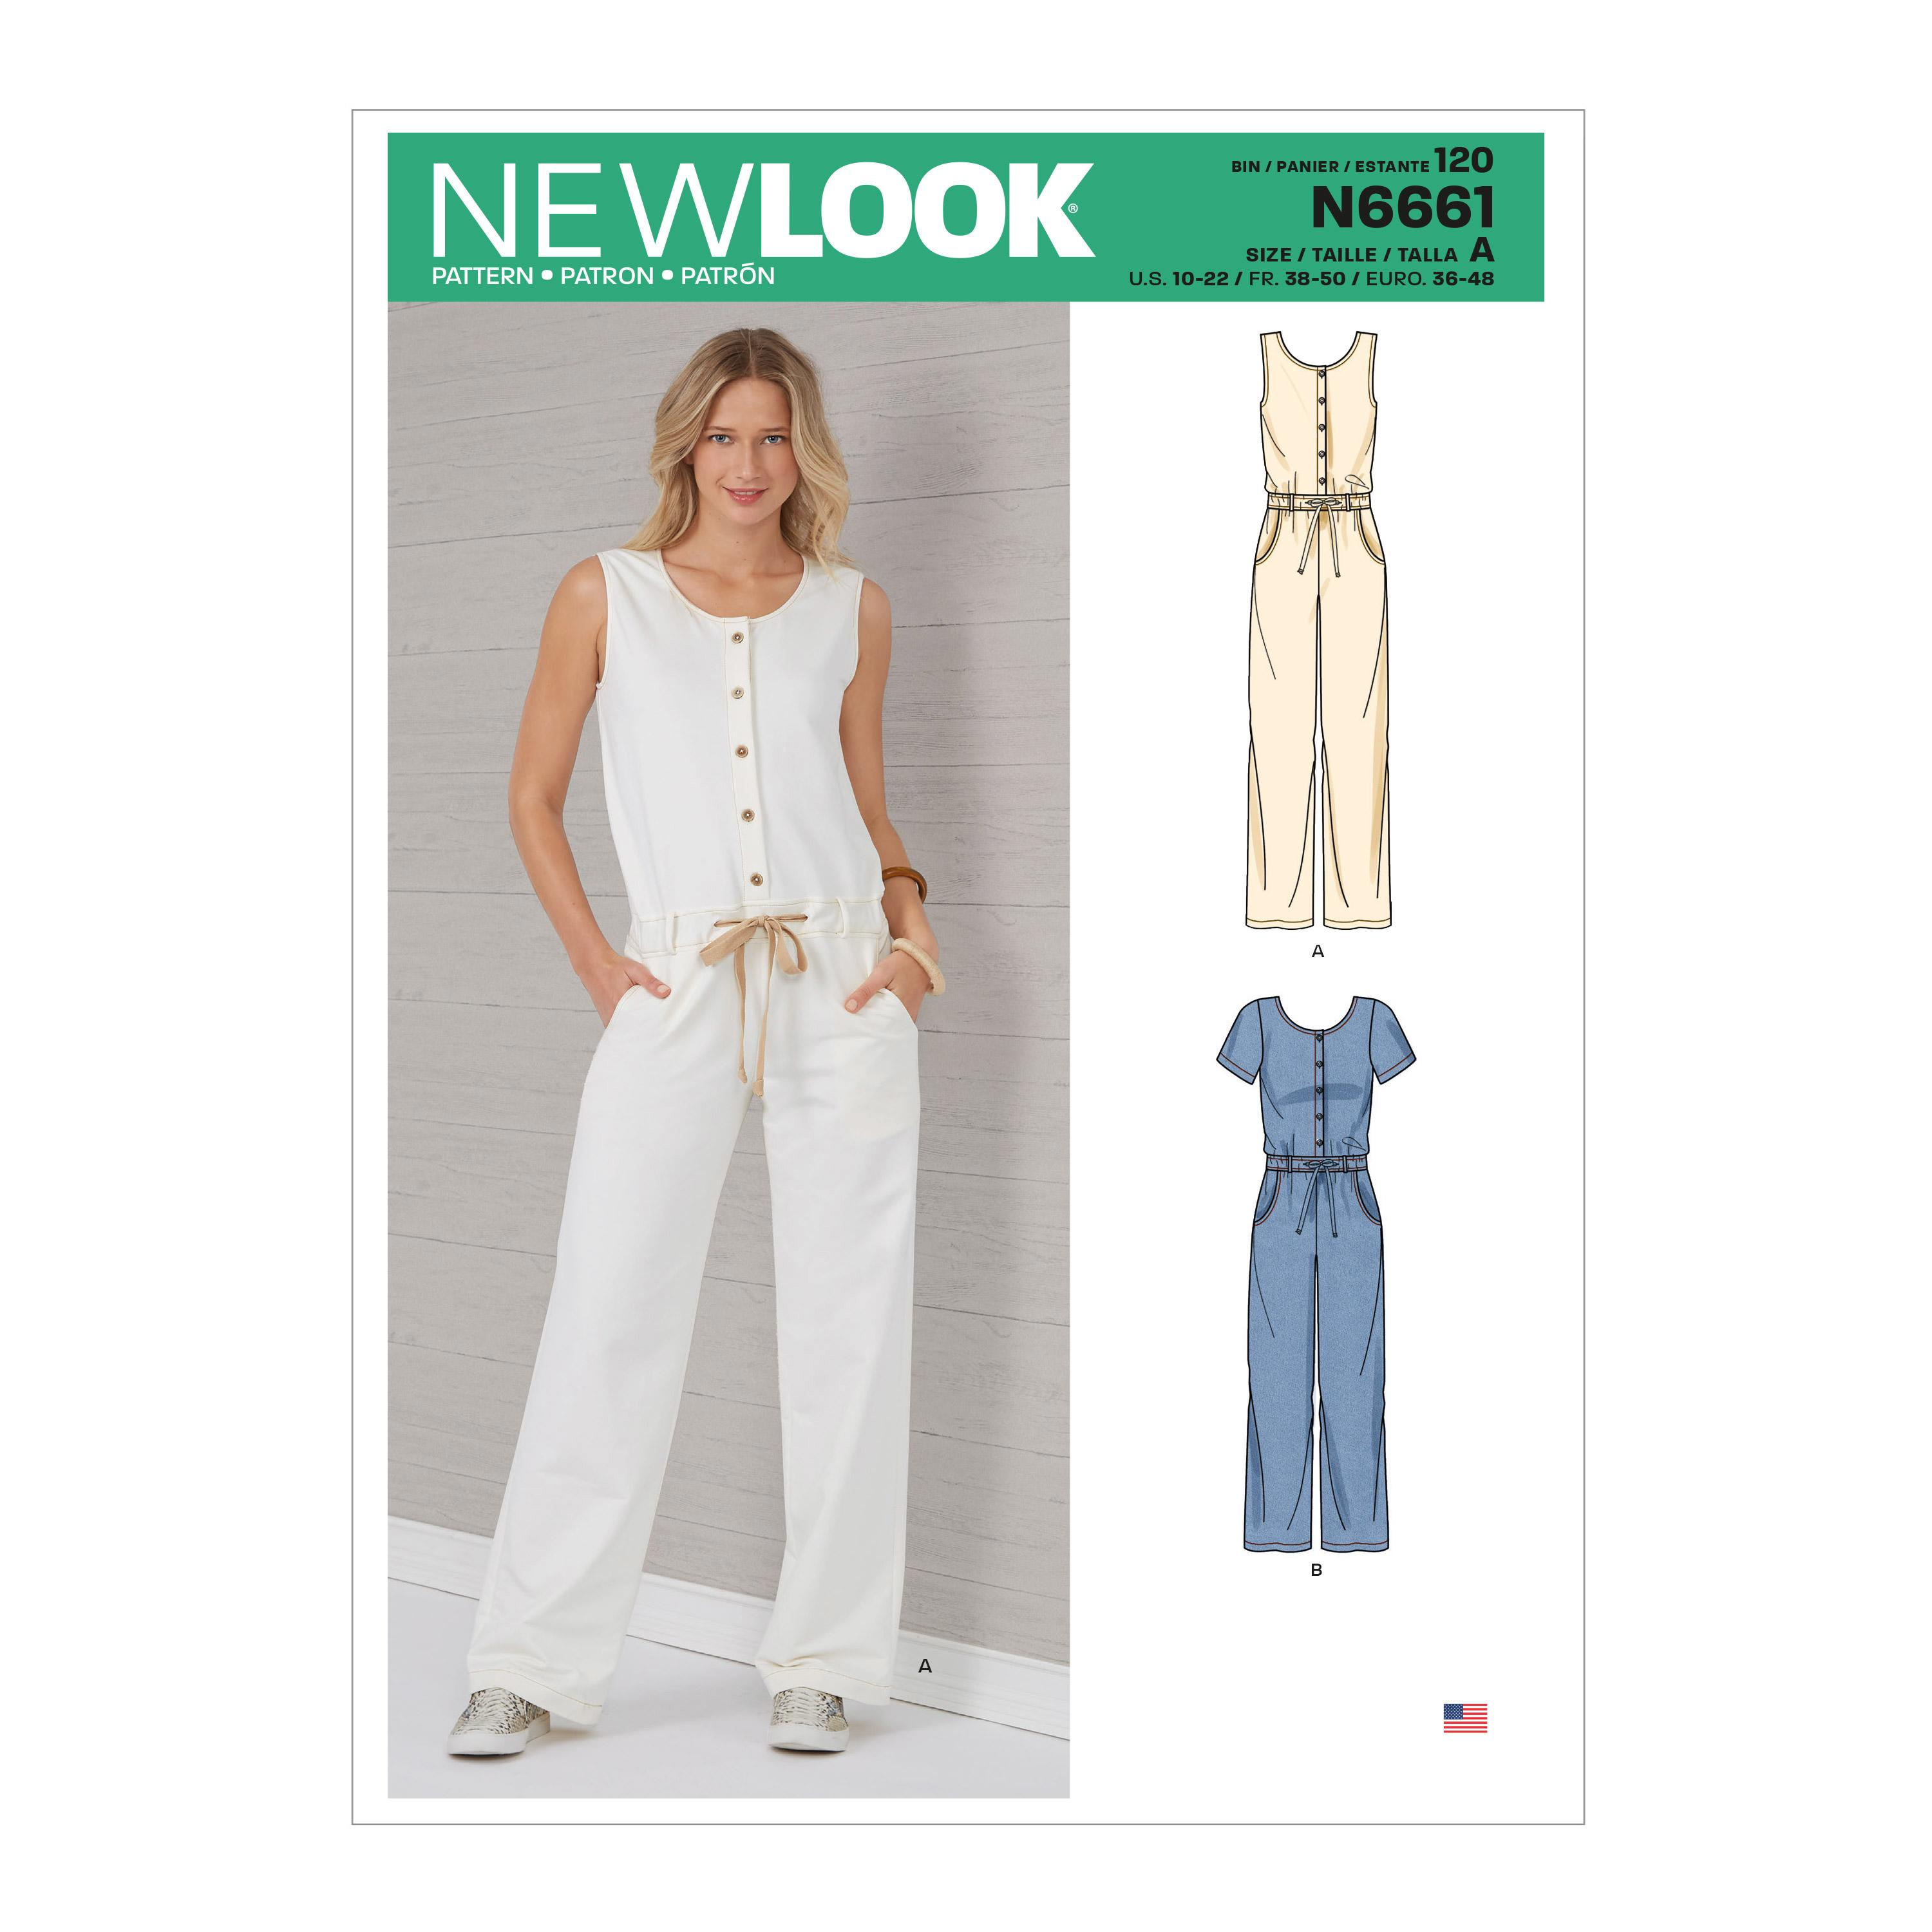 New Look Sewing Pattern N6661 Misses' Relaxed Fit Jumpsuit With Drawstring Waist